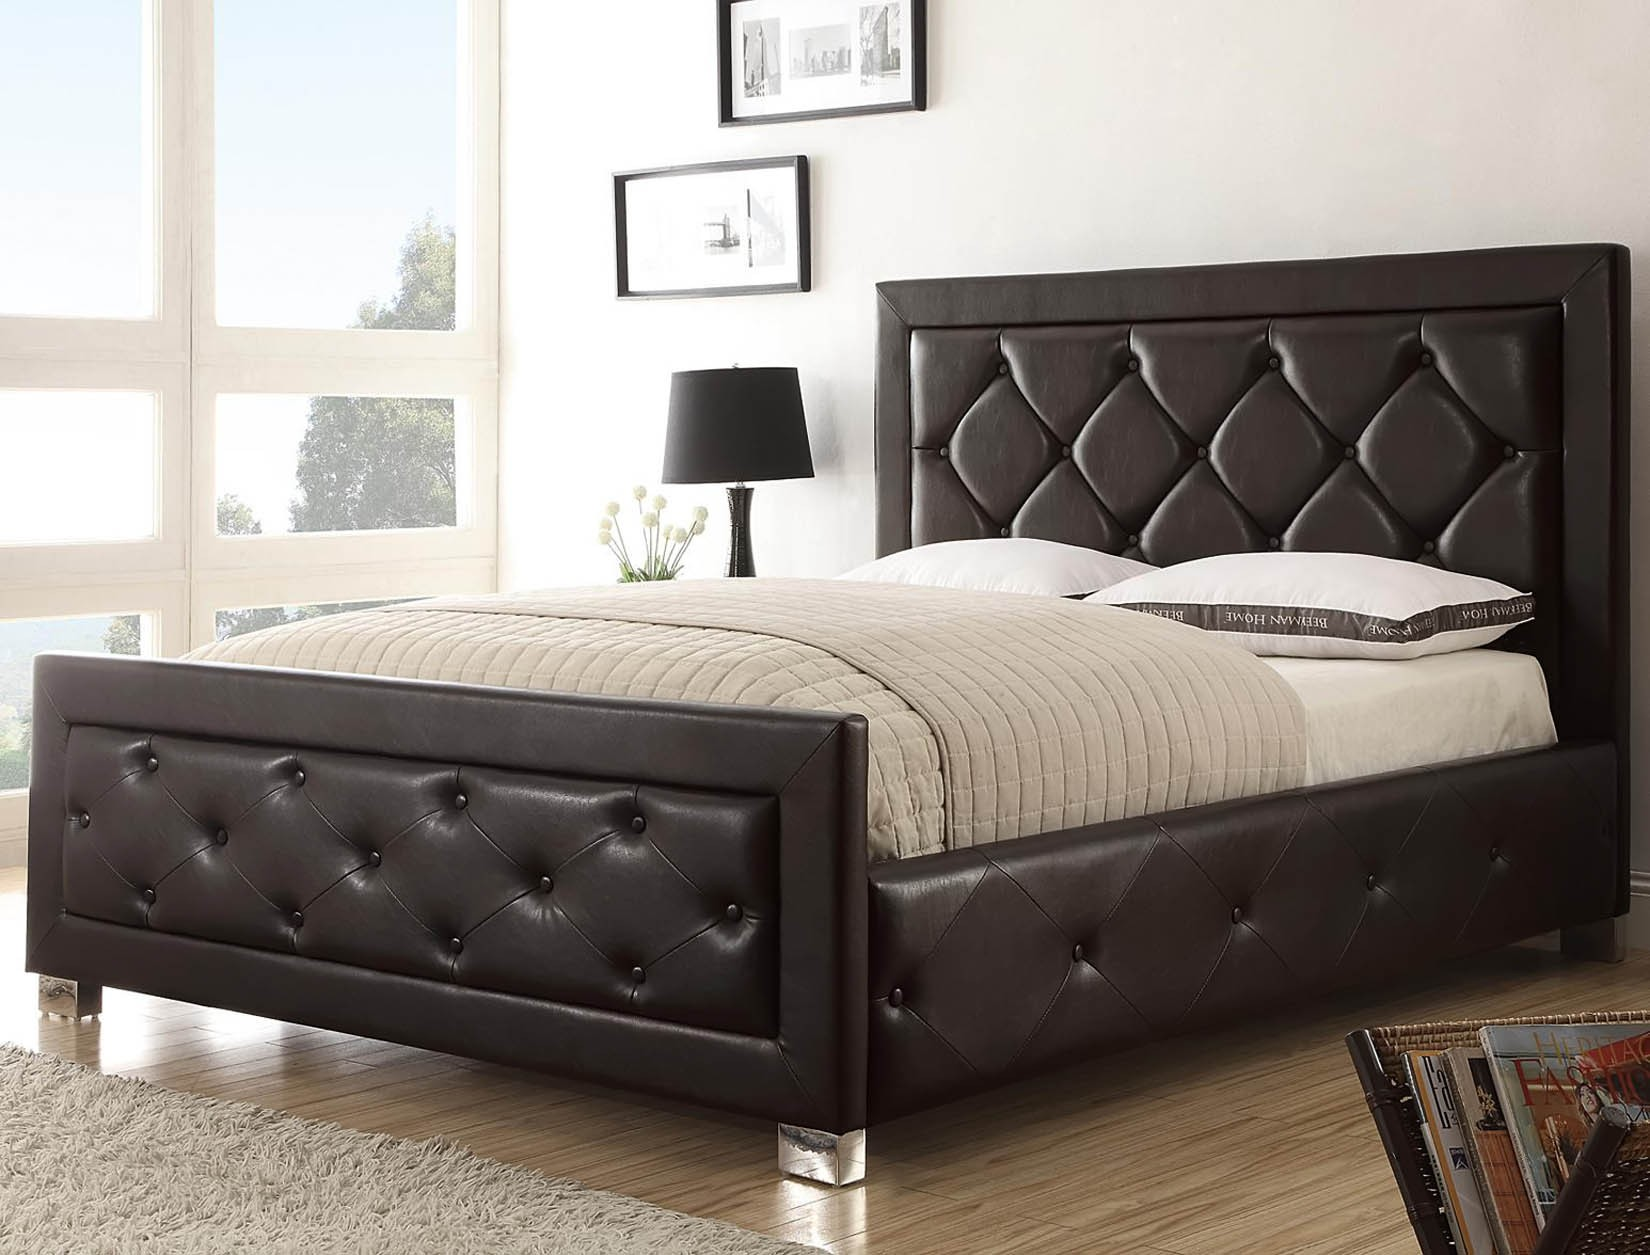 Cal king headboards design homesfeed Decorative headboards for beds